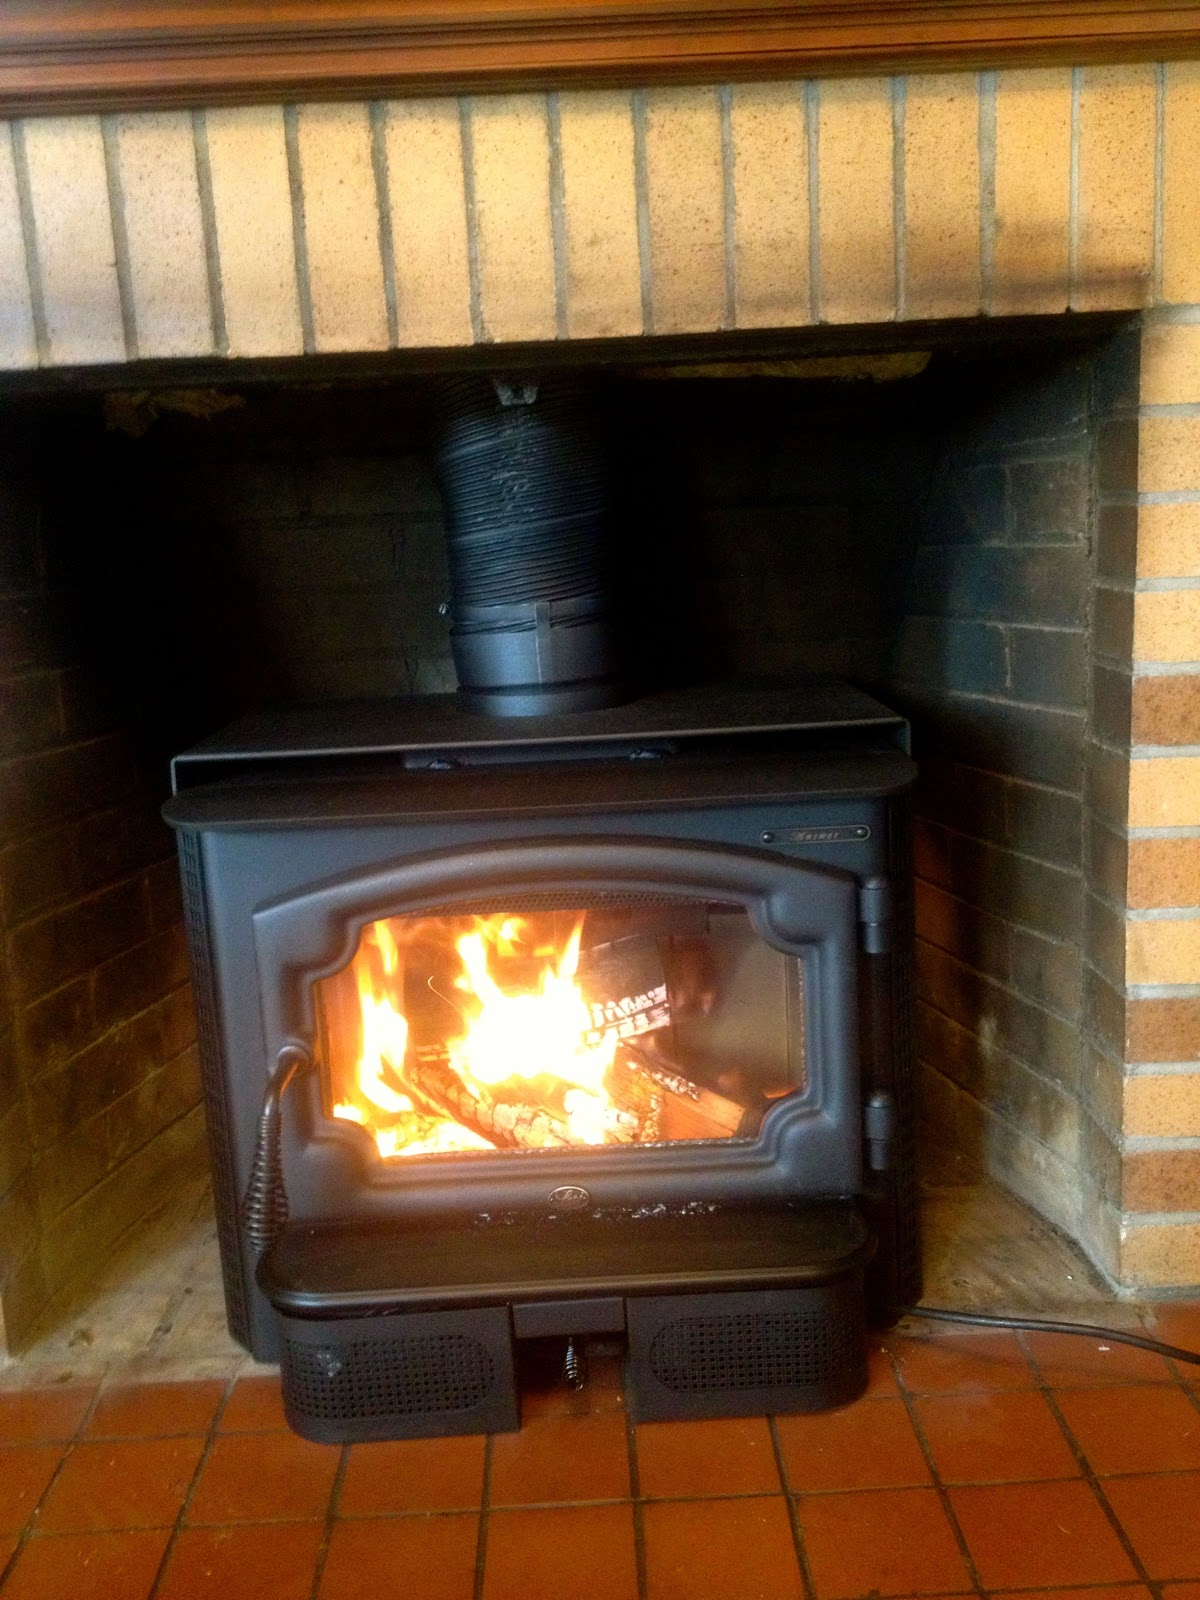 Simple Living and Eating: Why Get a Wood Burning Stove?: Simple ...